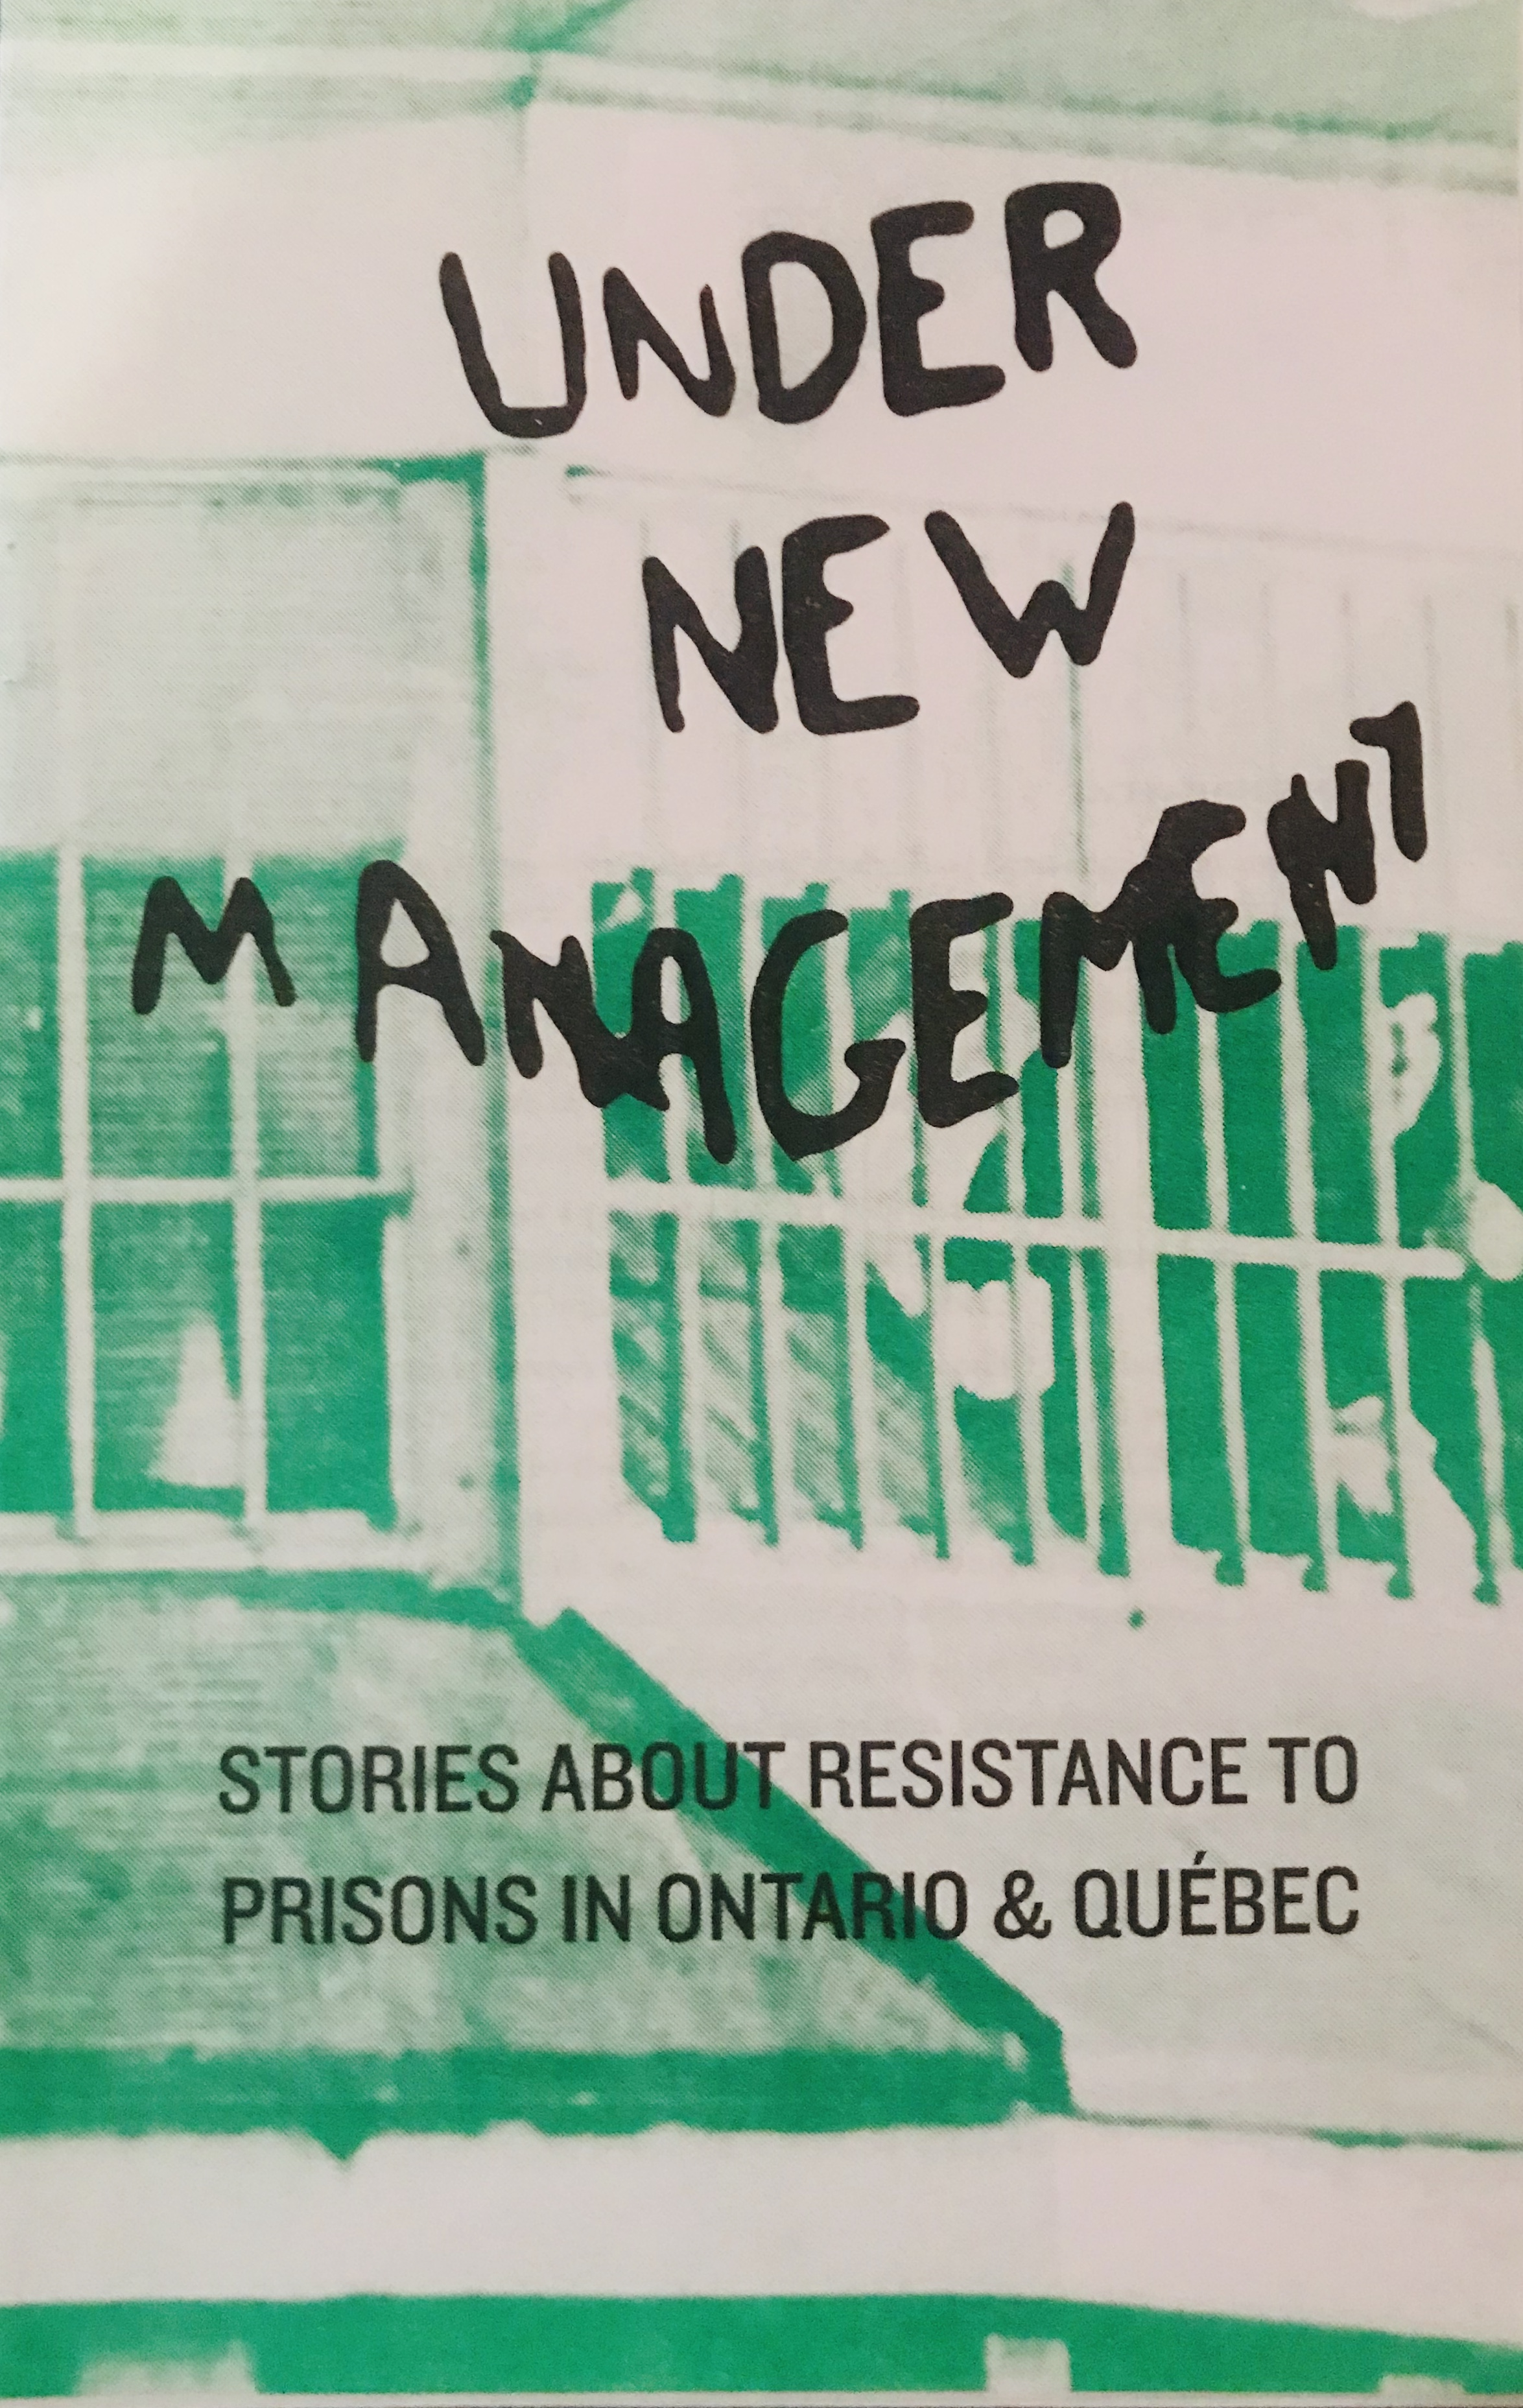 Under New Management cover; black text superimposed in an image of prison bars